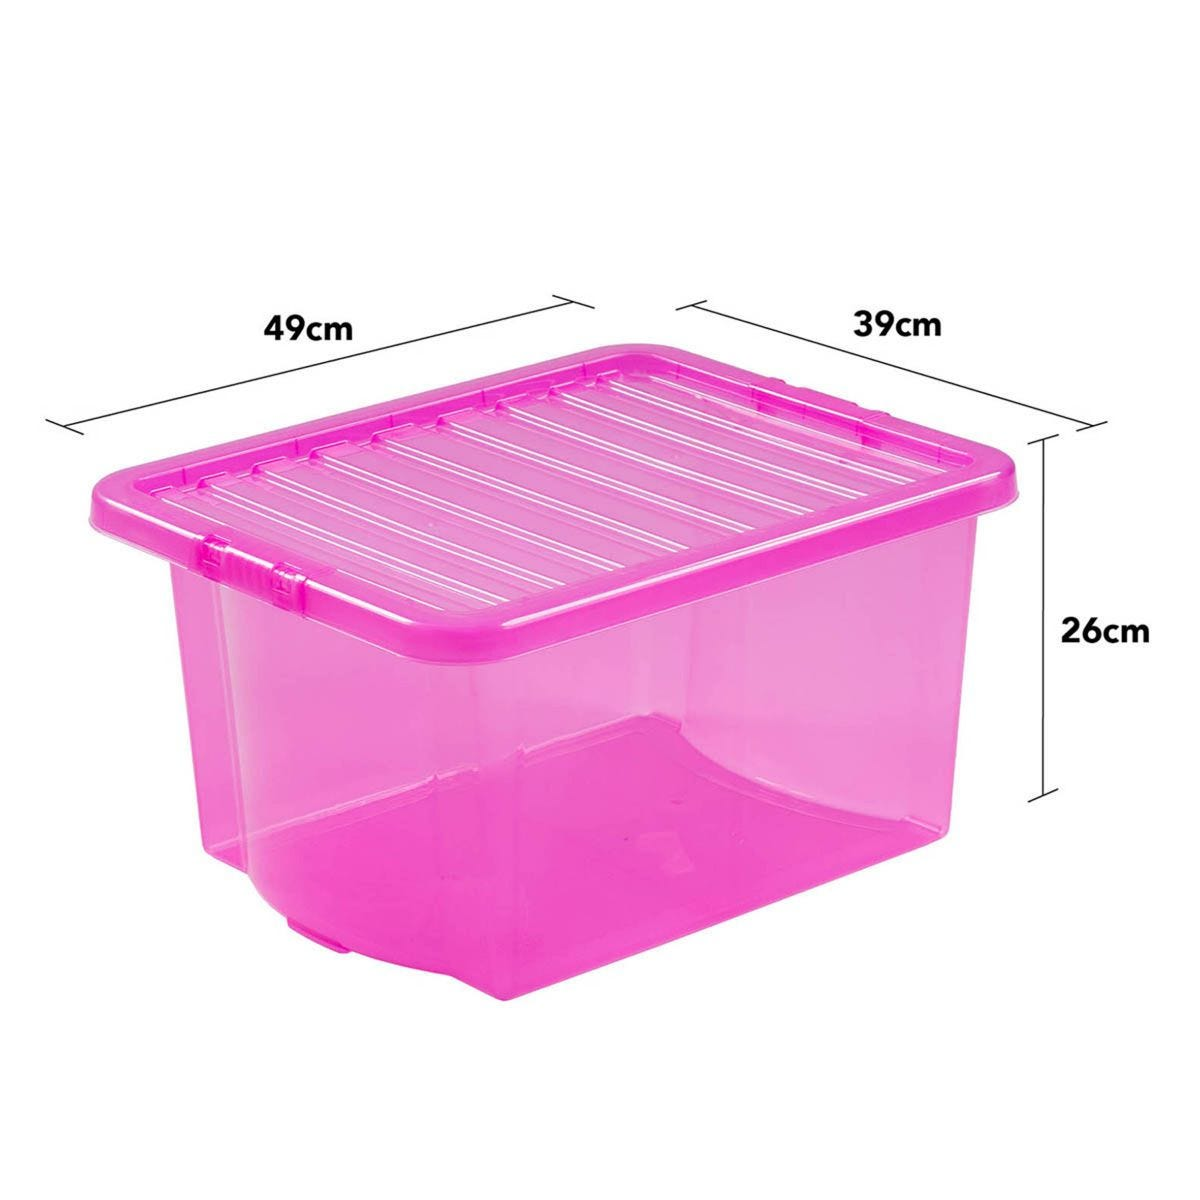 Wham Crystal Pink Storage Box with Lid 35L - Set of 3